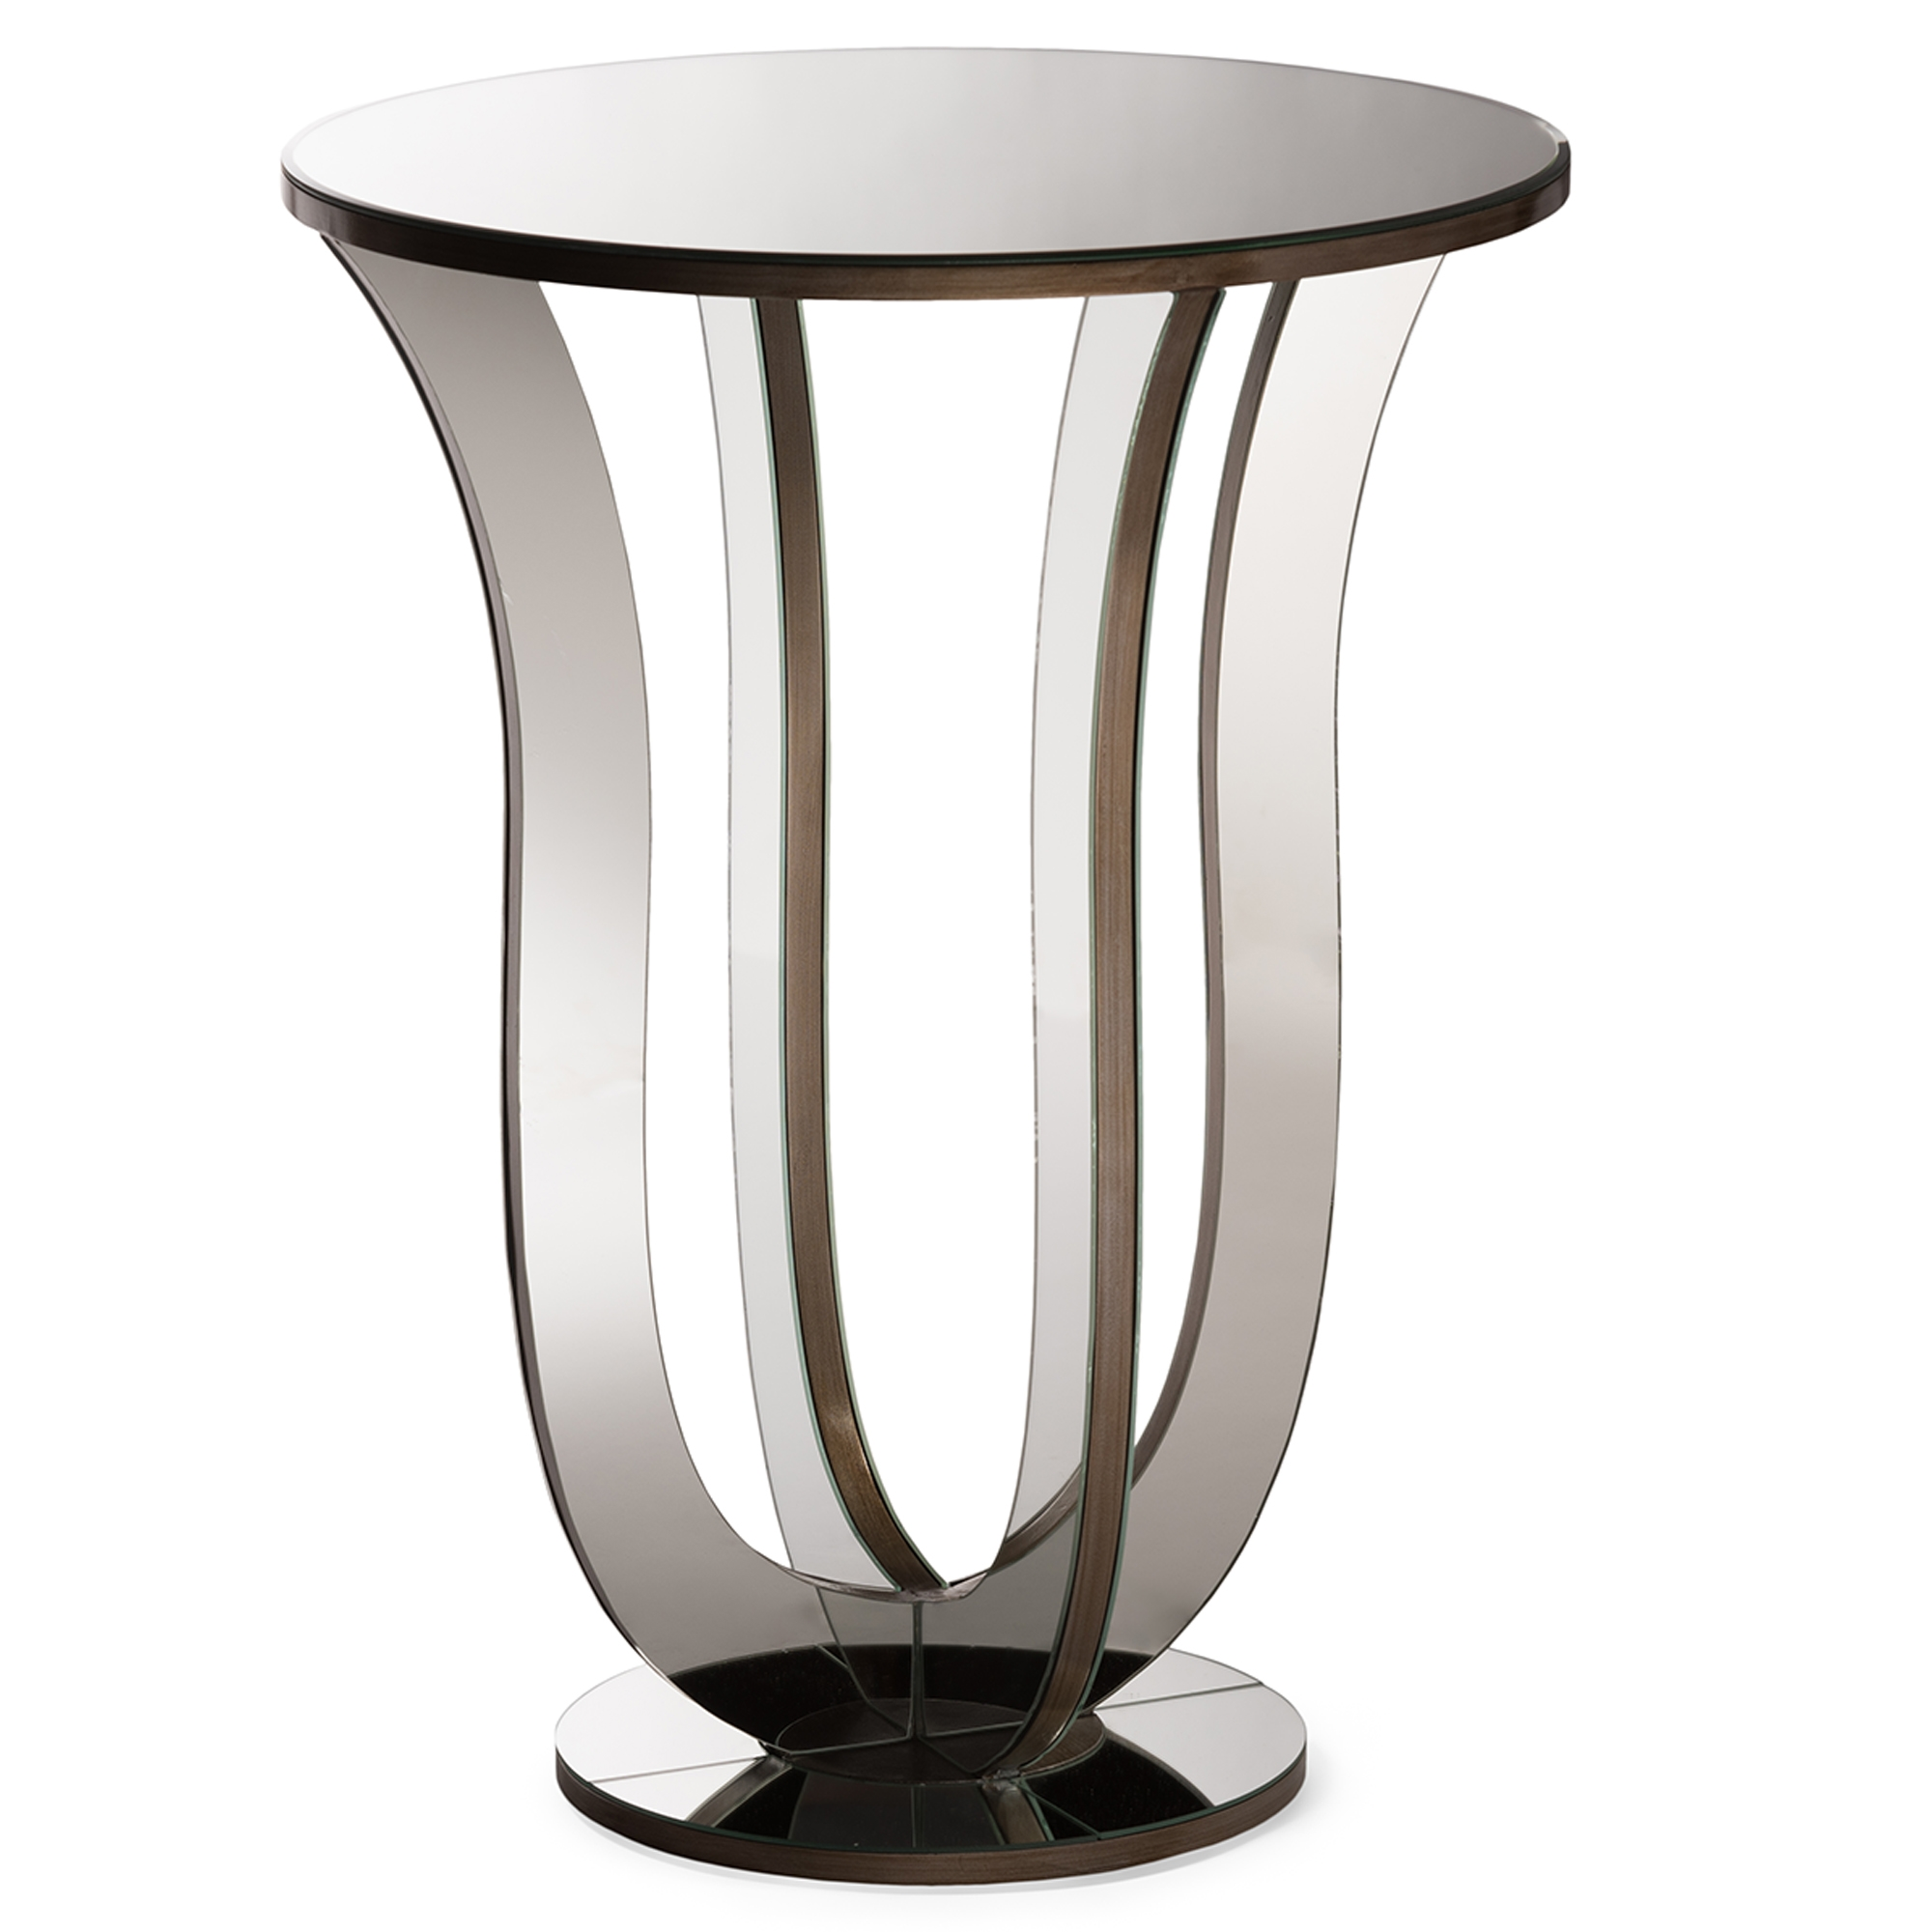 baxton studio kylie modern and contemporary hollywood regency end table with mirror accent glamour style mirrored side clear acrylic furniture lamp storage decorative accessories